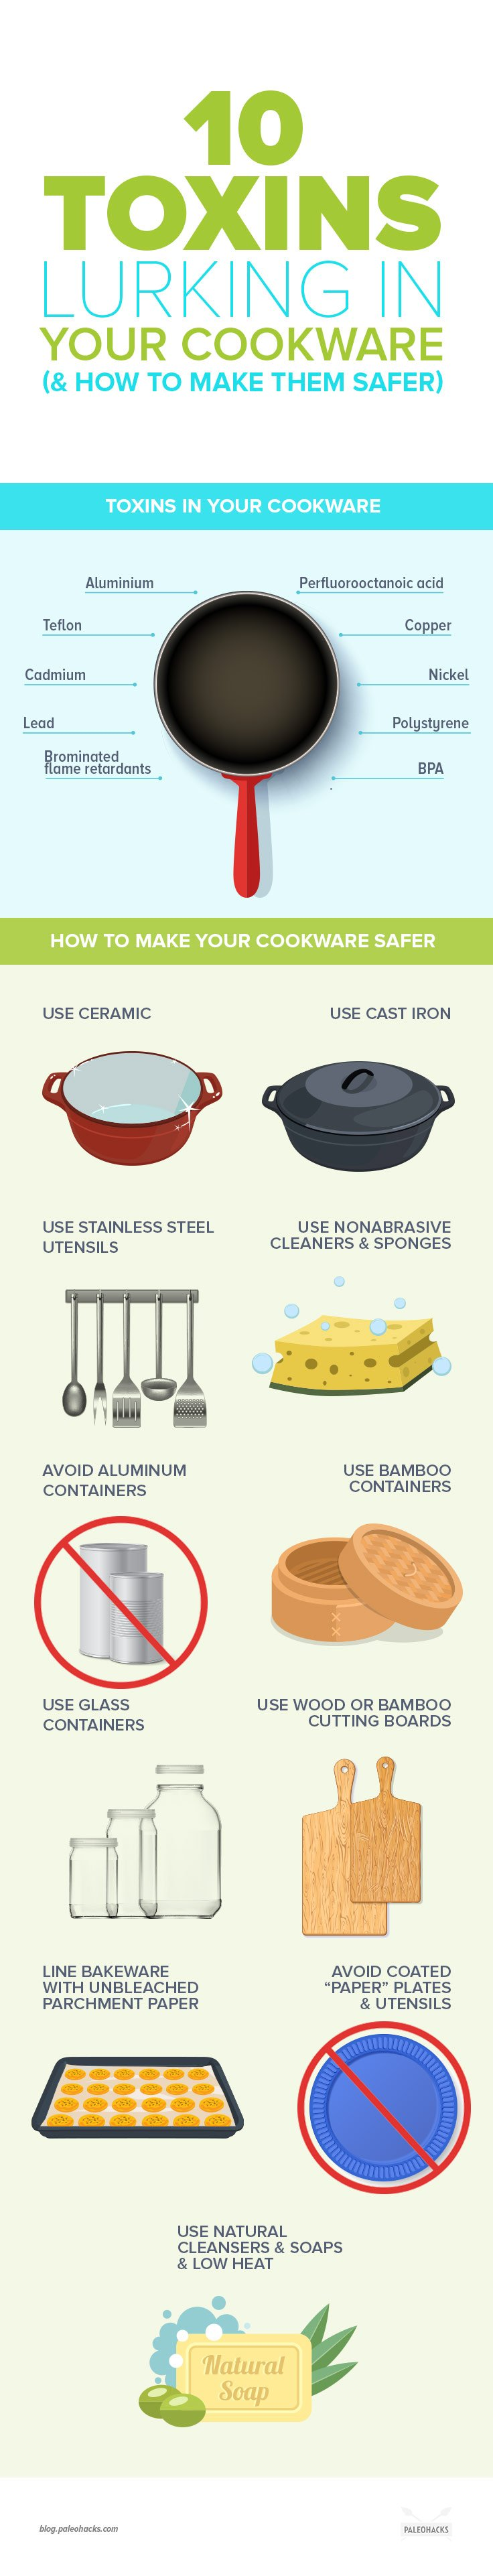 INFOG_Toxins-in-Your-Cookware.jpg